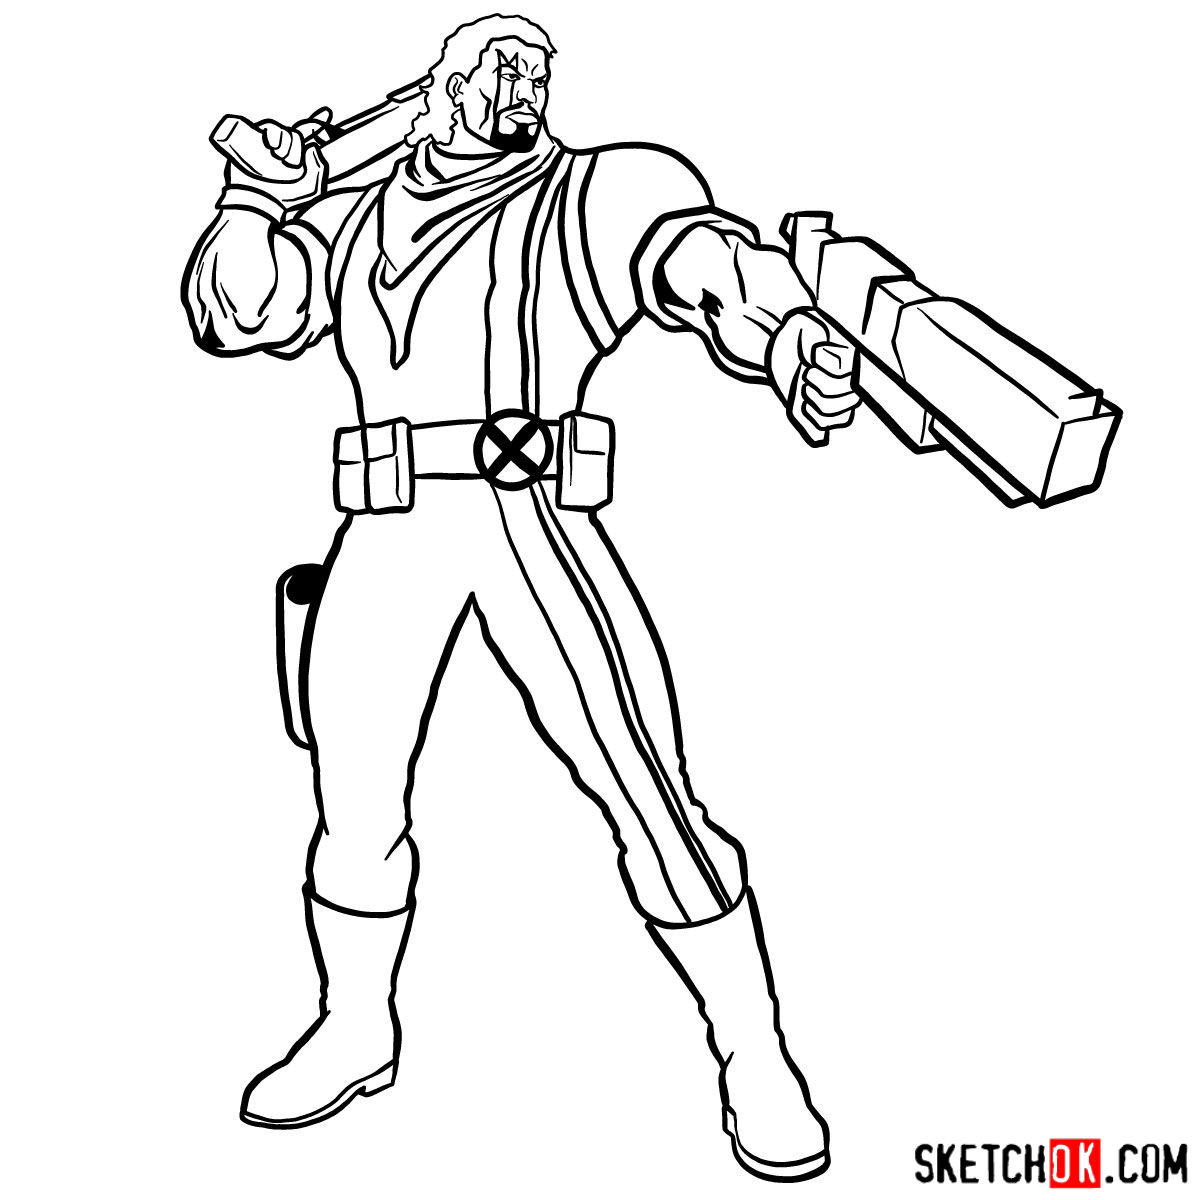 How to draw Lucas Bishop, a mutant from X-Men series - step 15